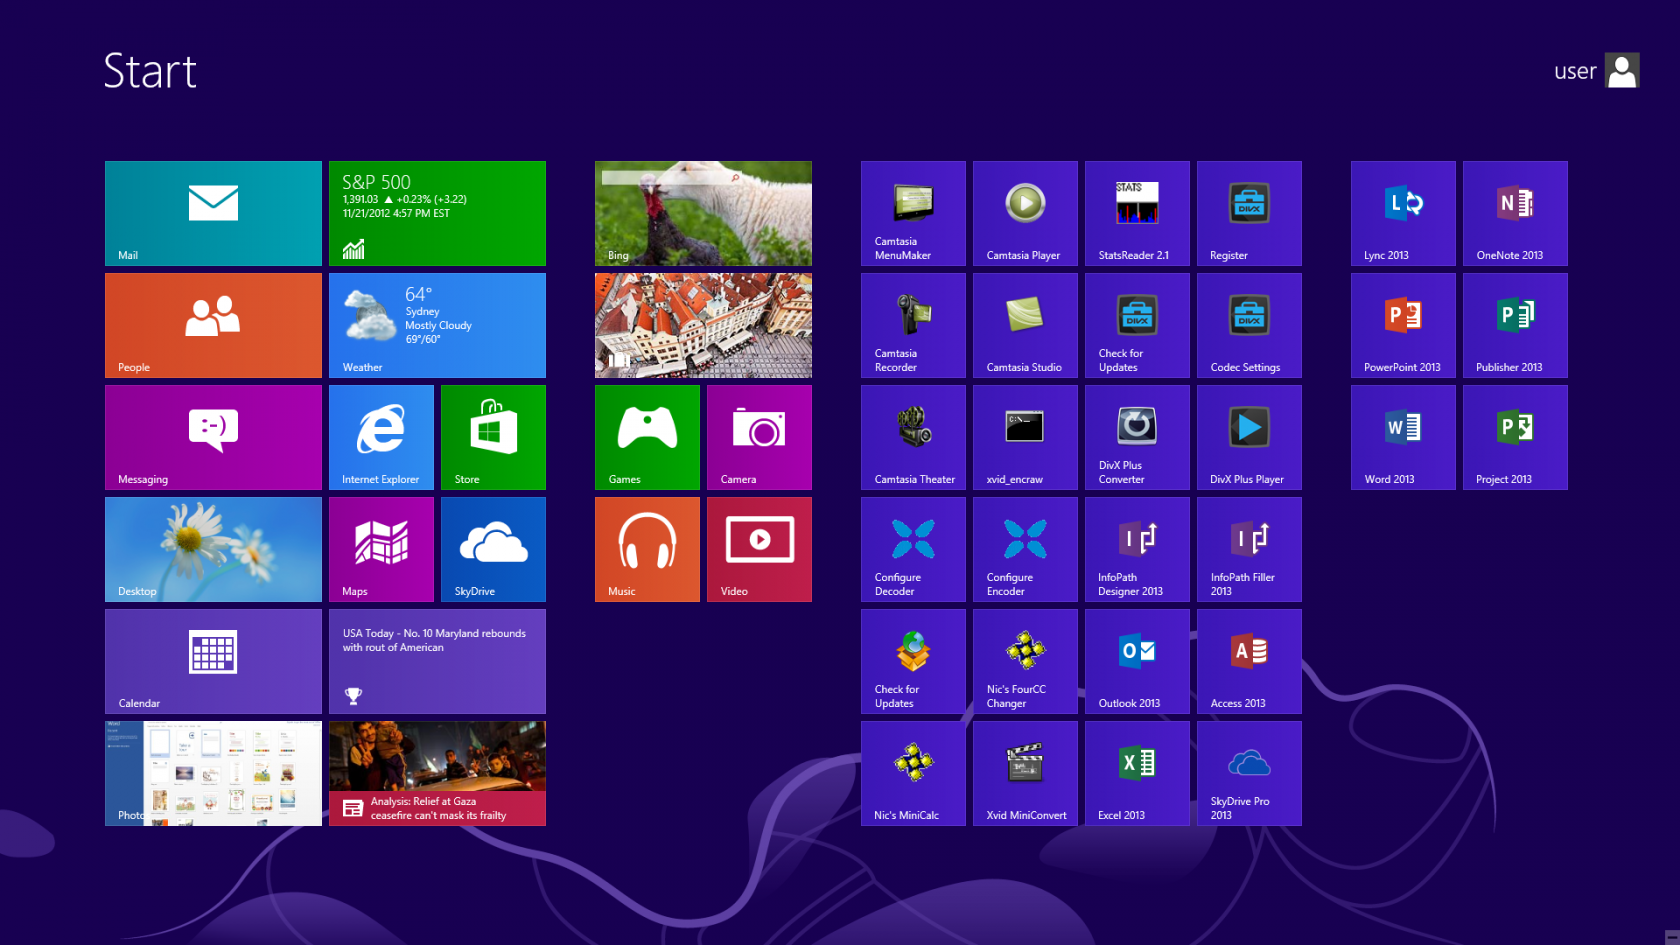 Windows 8. 1 pro x64 free download iso 5k pc soft.